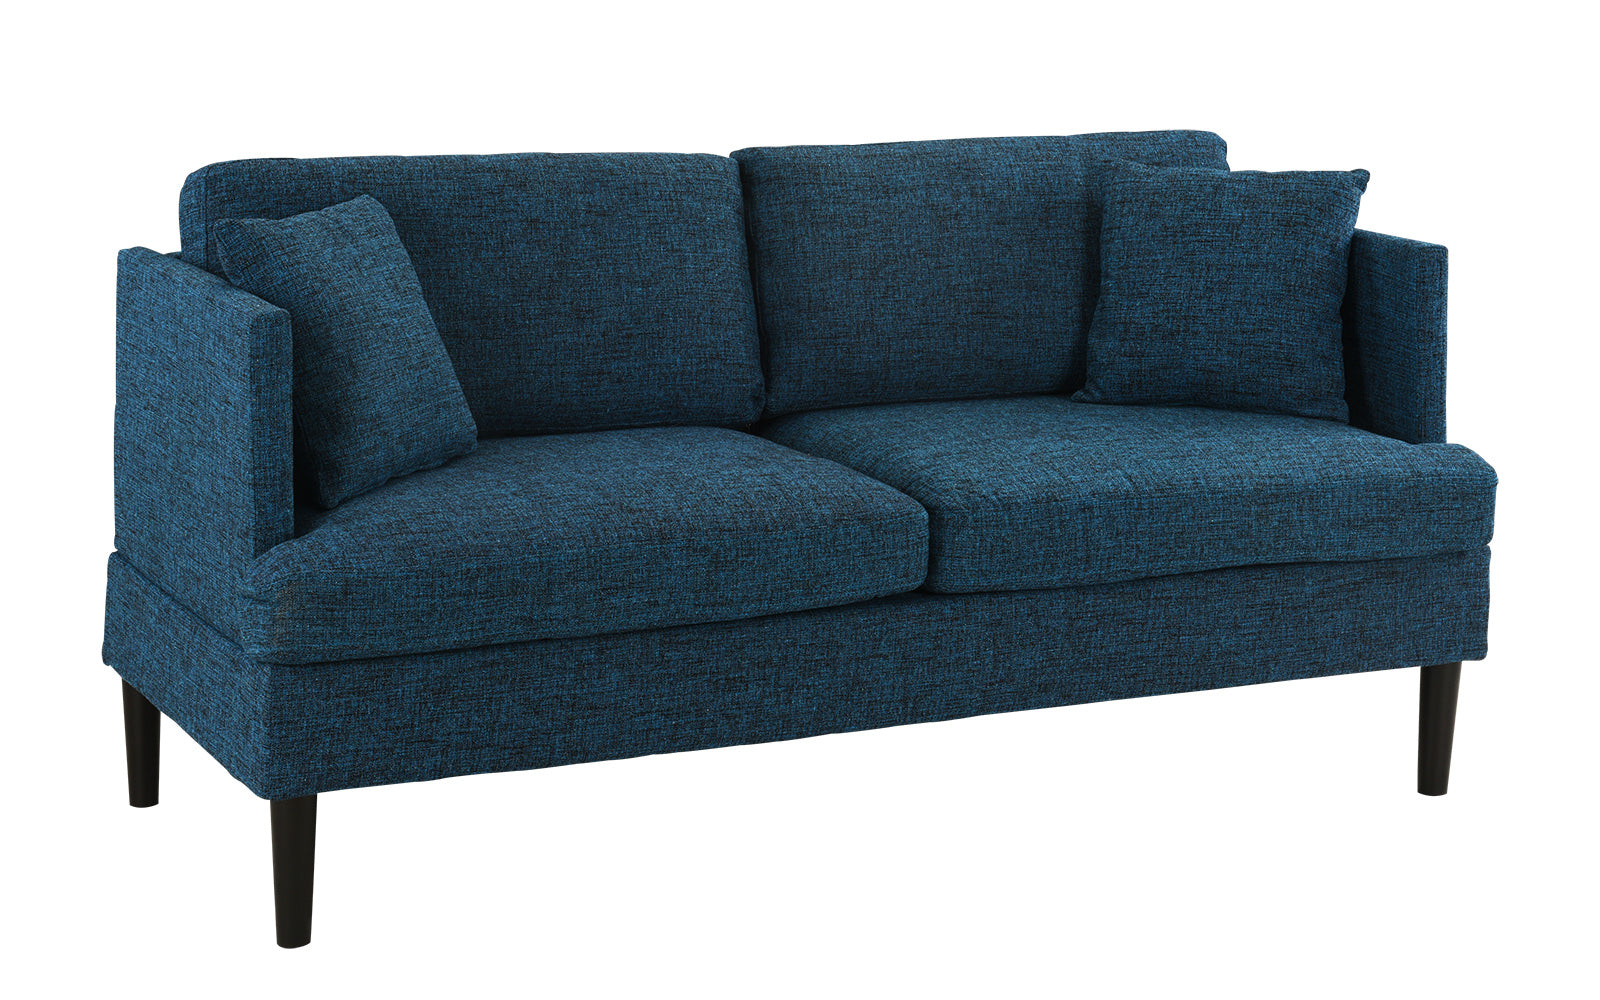 Ordinaire August Modern Loveseat Sofa With Wooden Legs